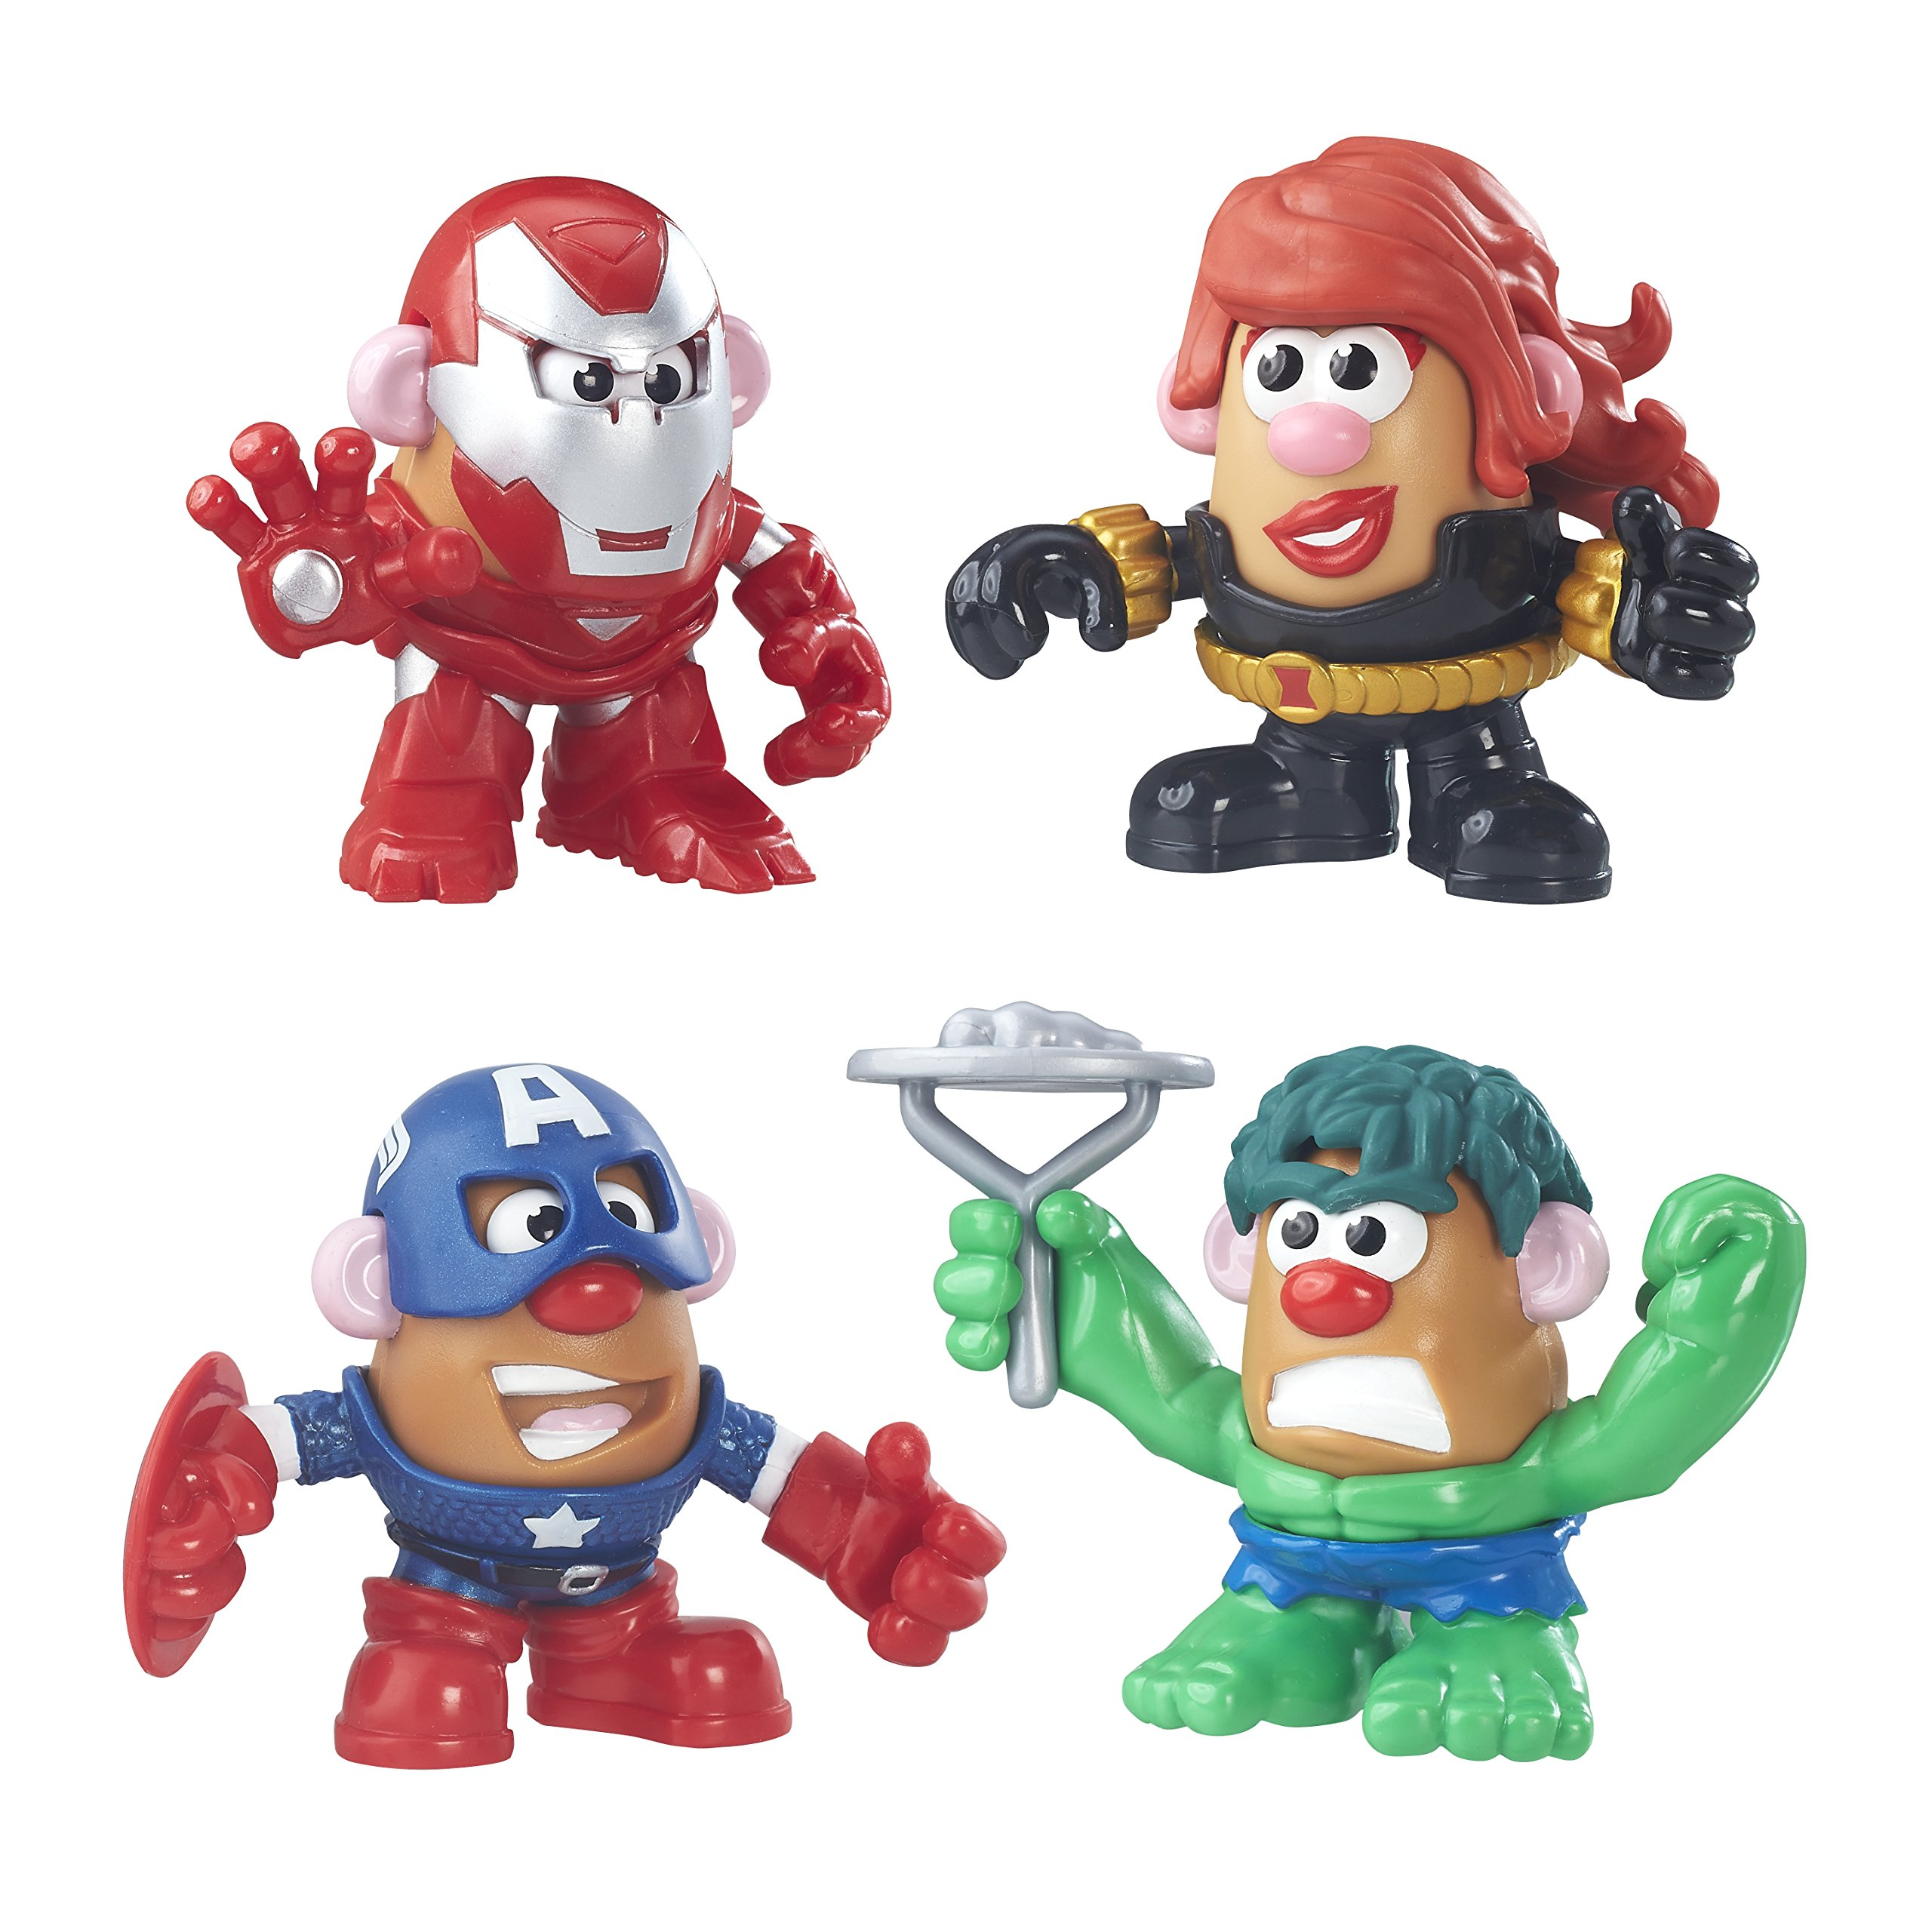 Mr Potato Head Playskool Friends Marvel Super Rally Pack